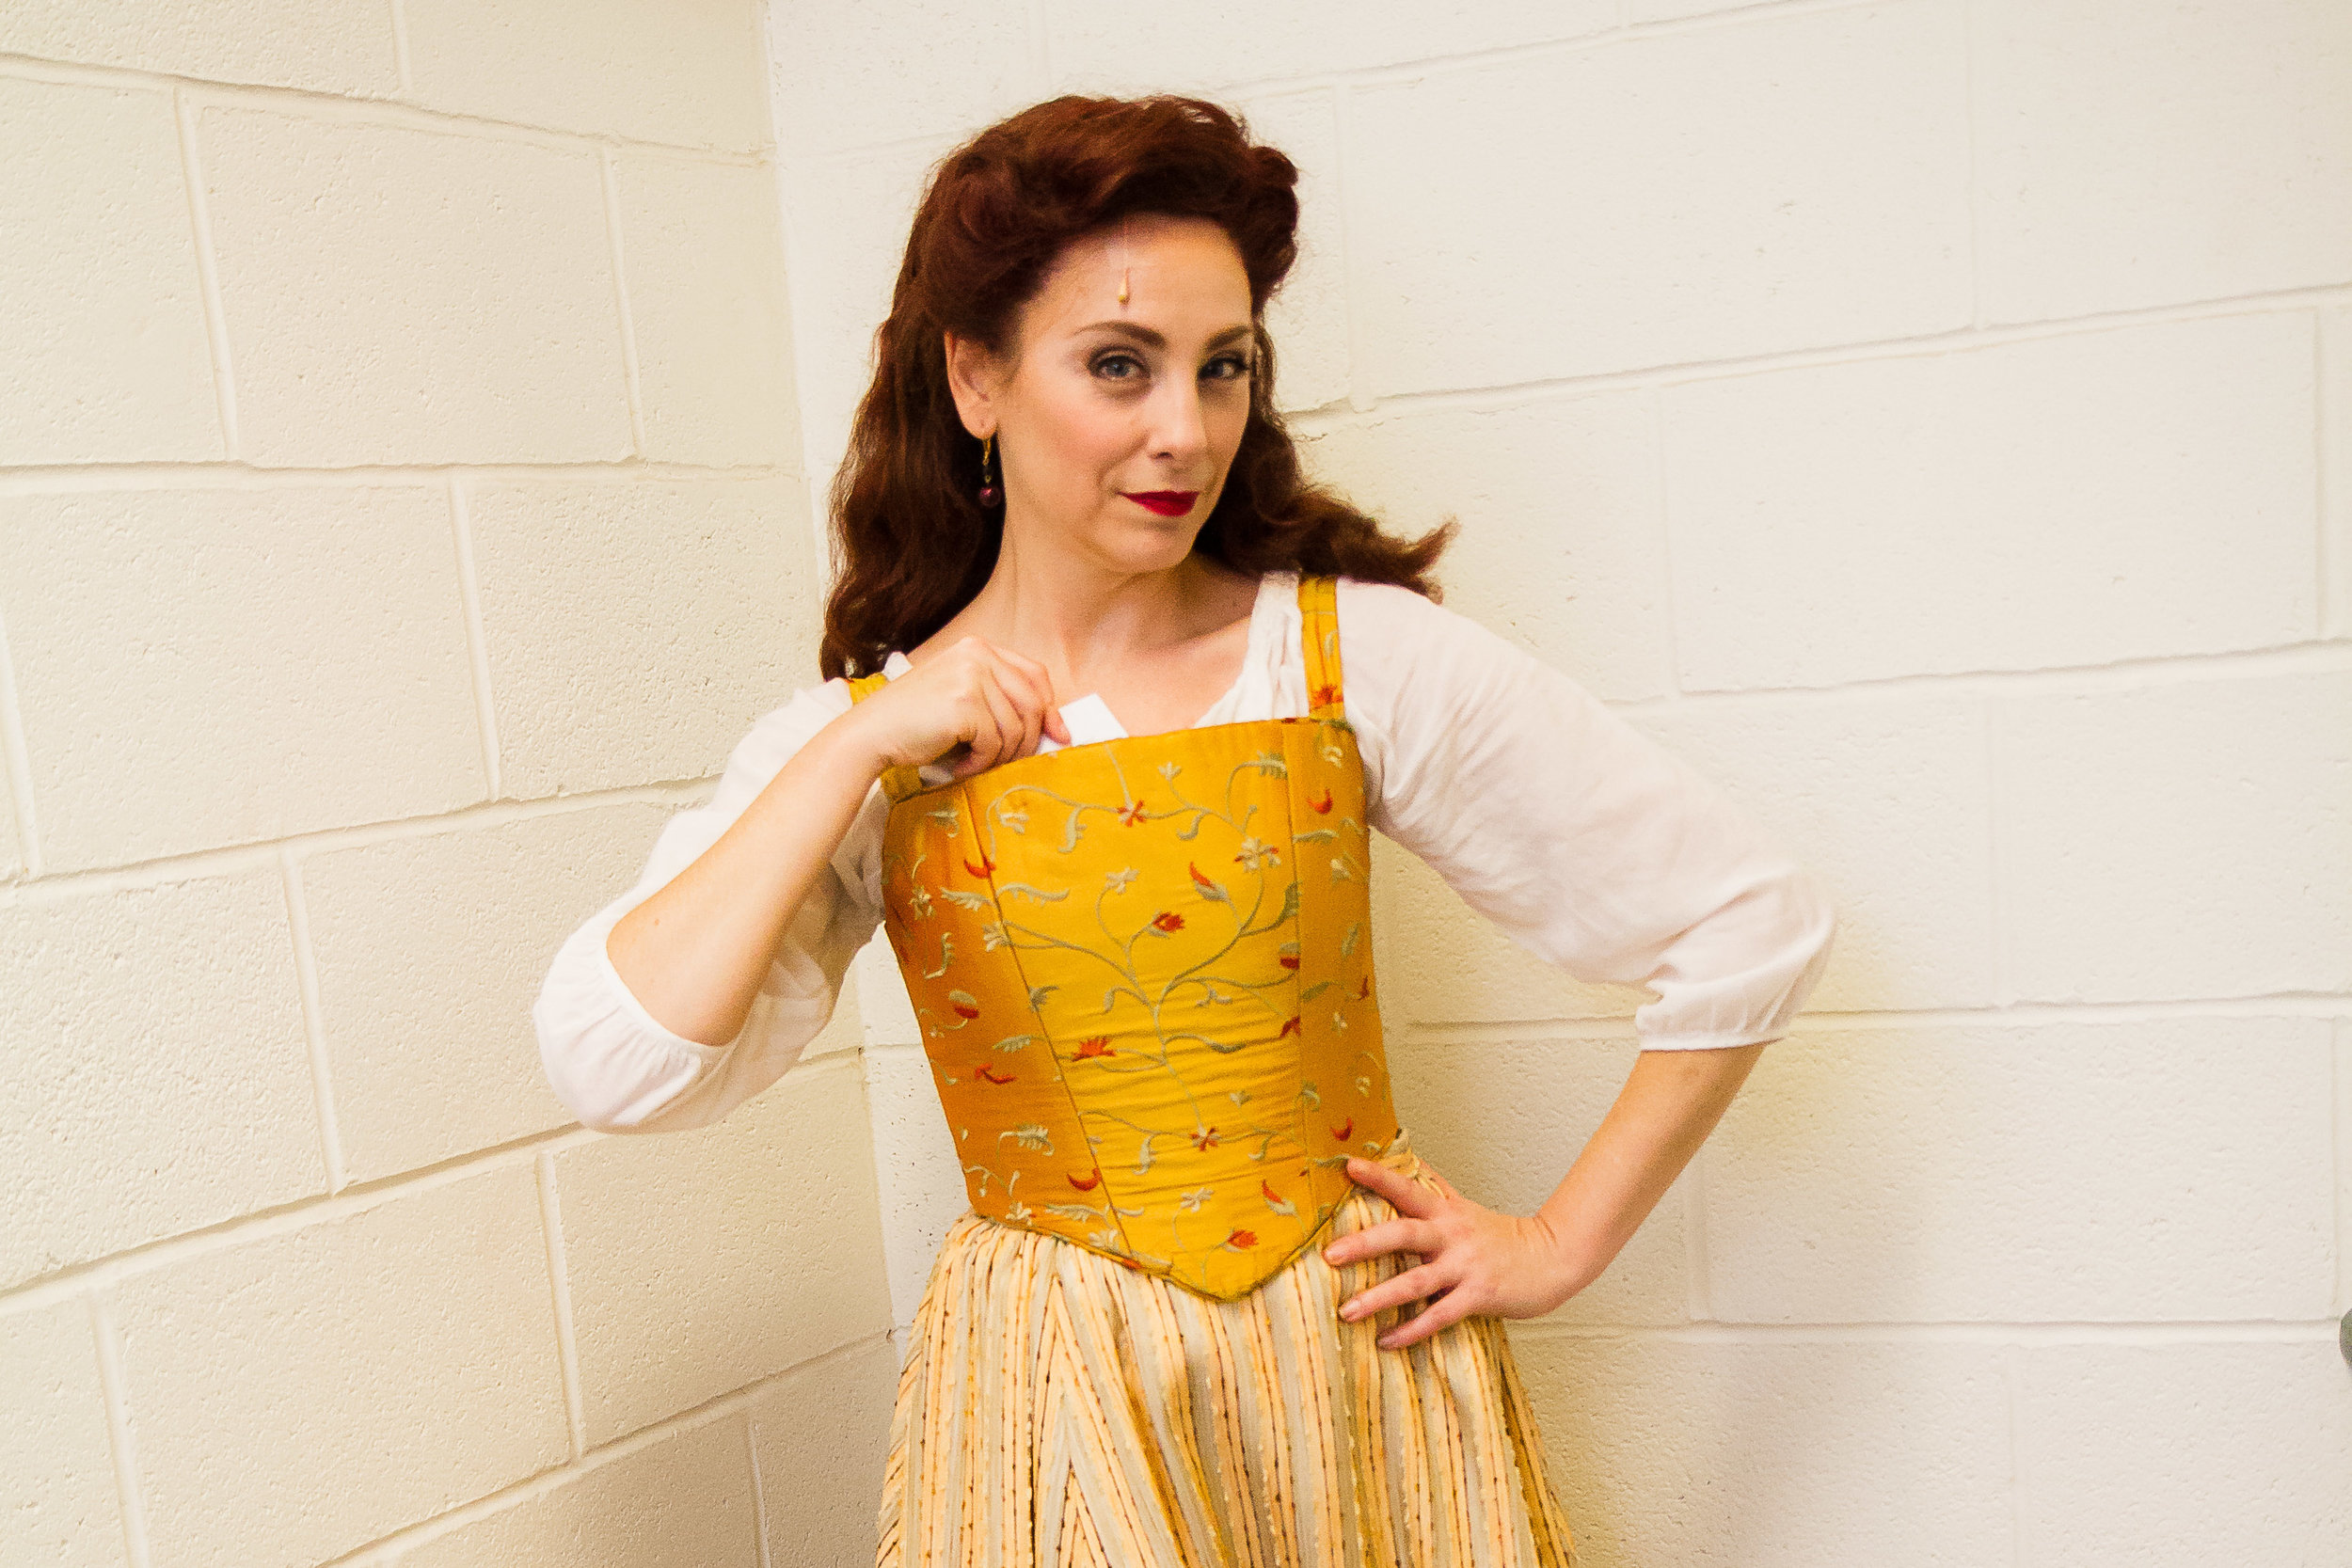 Susan as Kate-33.jpg